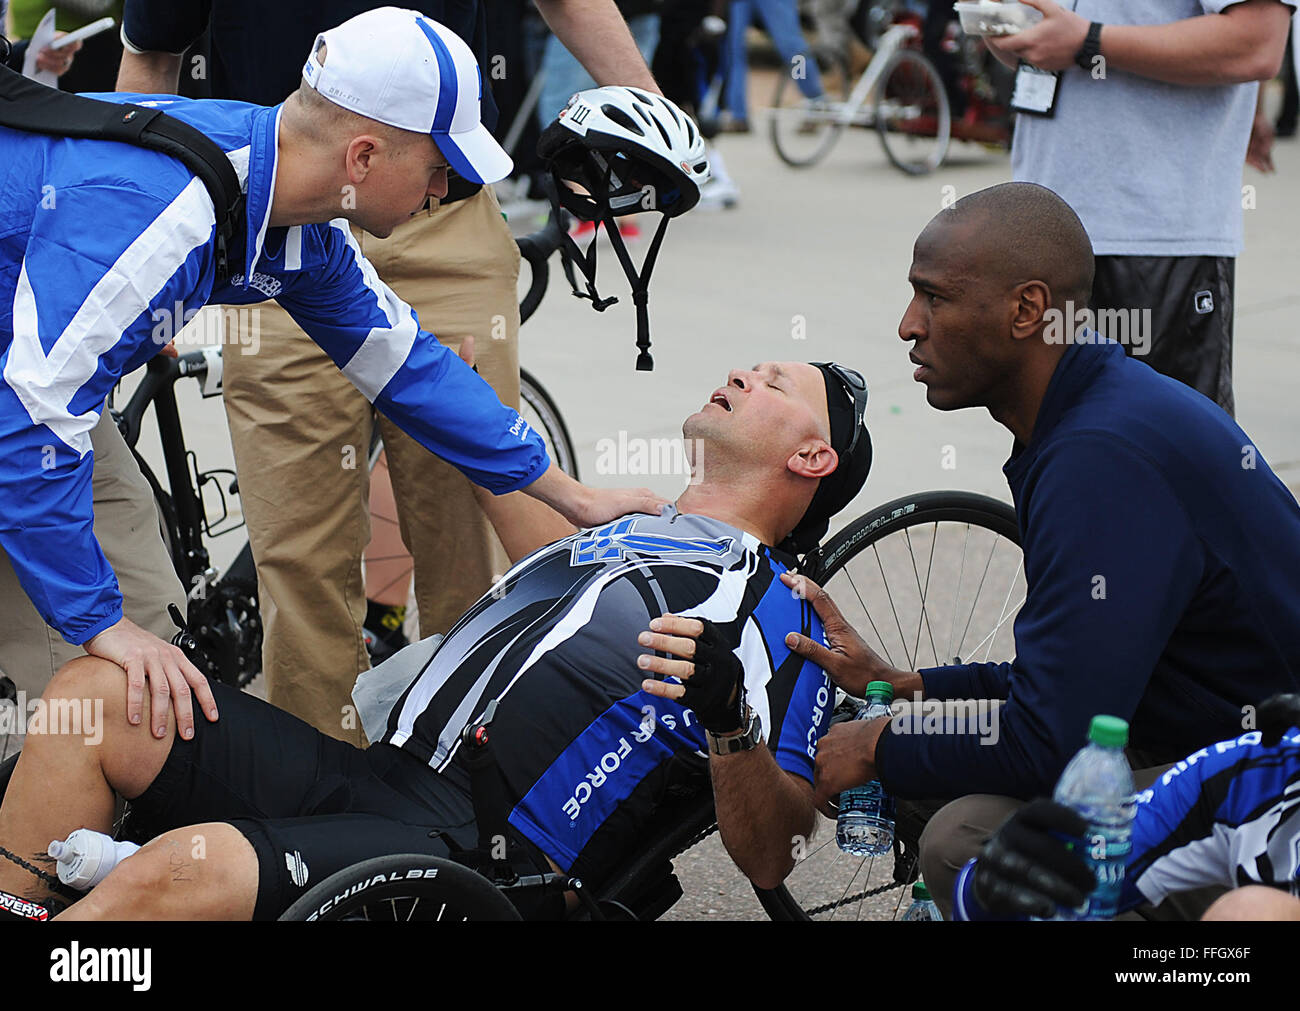 Chief Master Sgt. Damian Orslene, center, catches his breath after taking part in the recumbent cycling event. - Stock Image